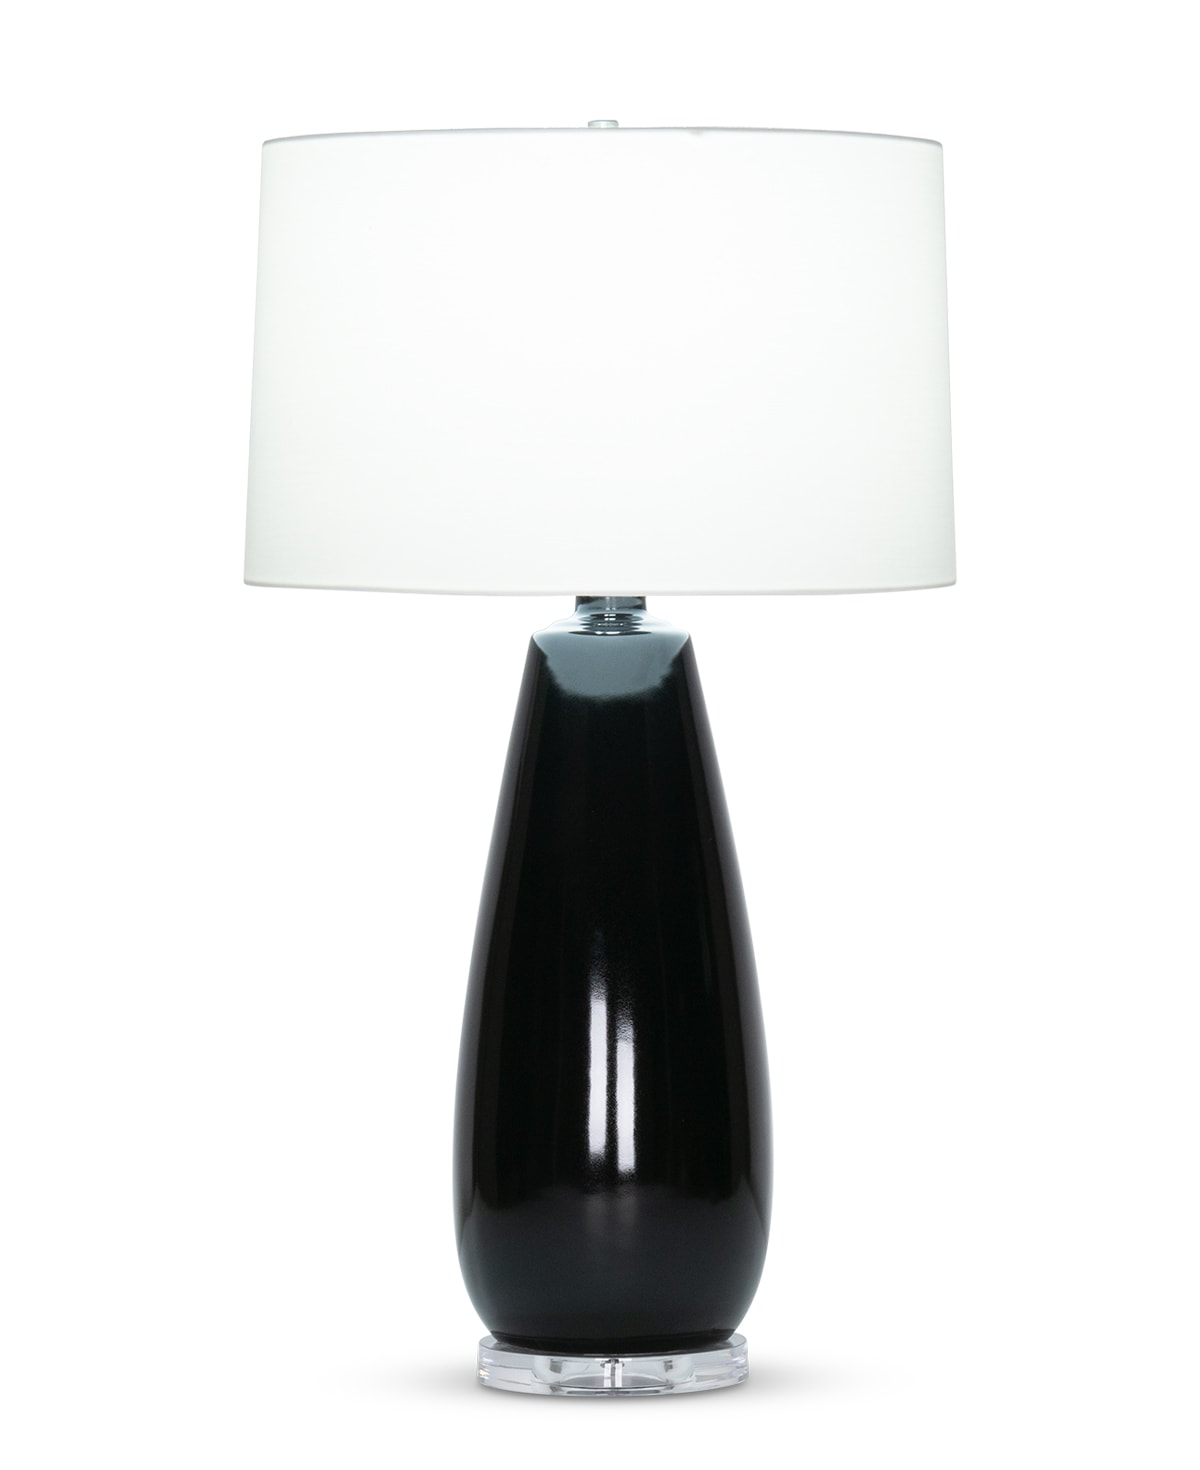 FlowDecor Daphne Table Lamp in ceramic with black gloss finish and acrylic base and off-white cotton tapered drum shade (# 4509)